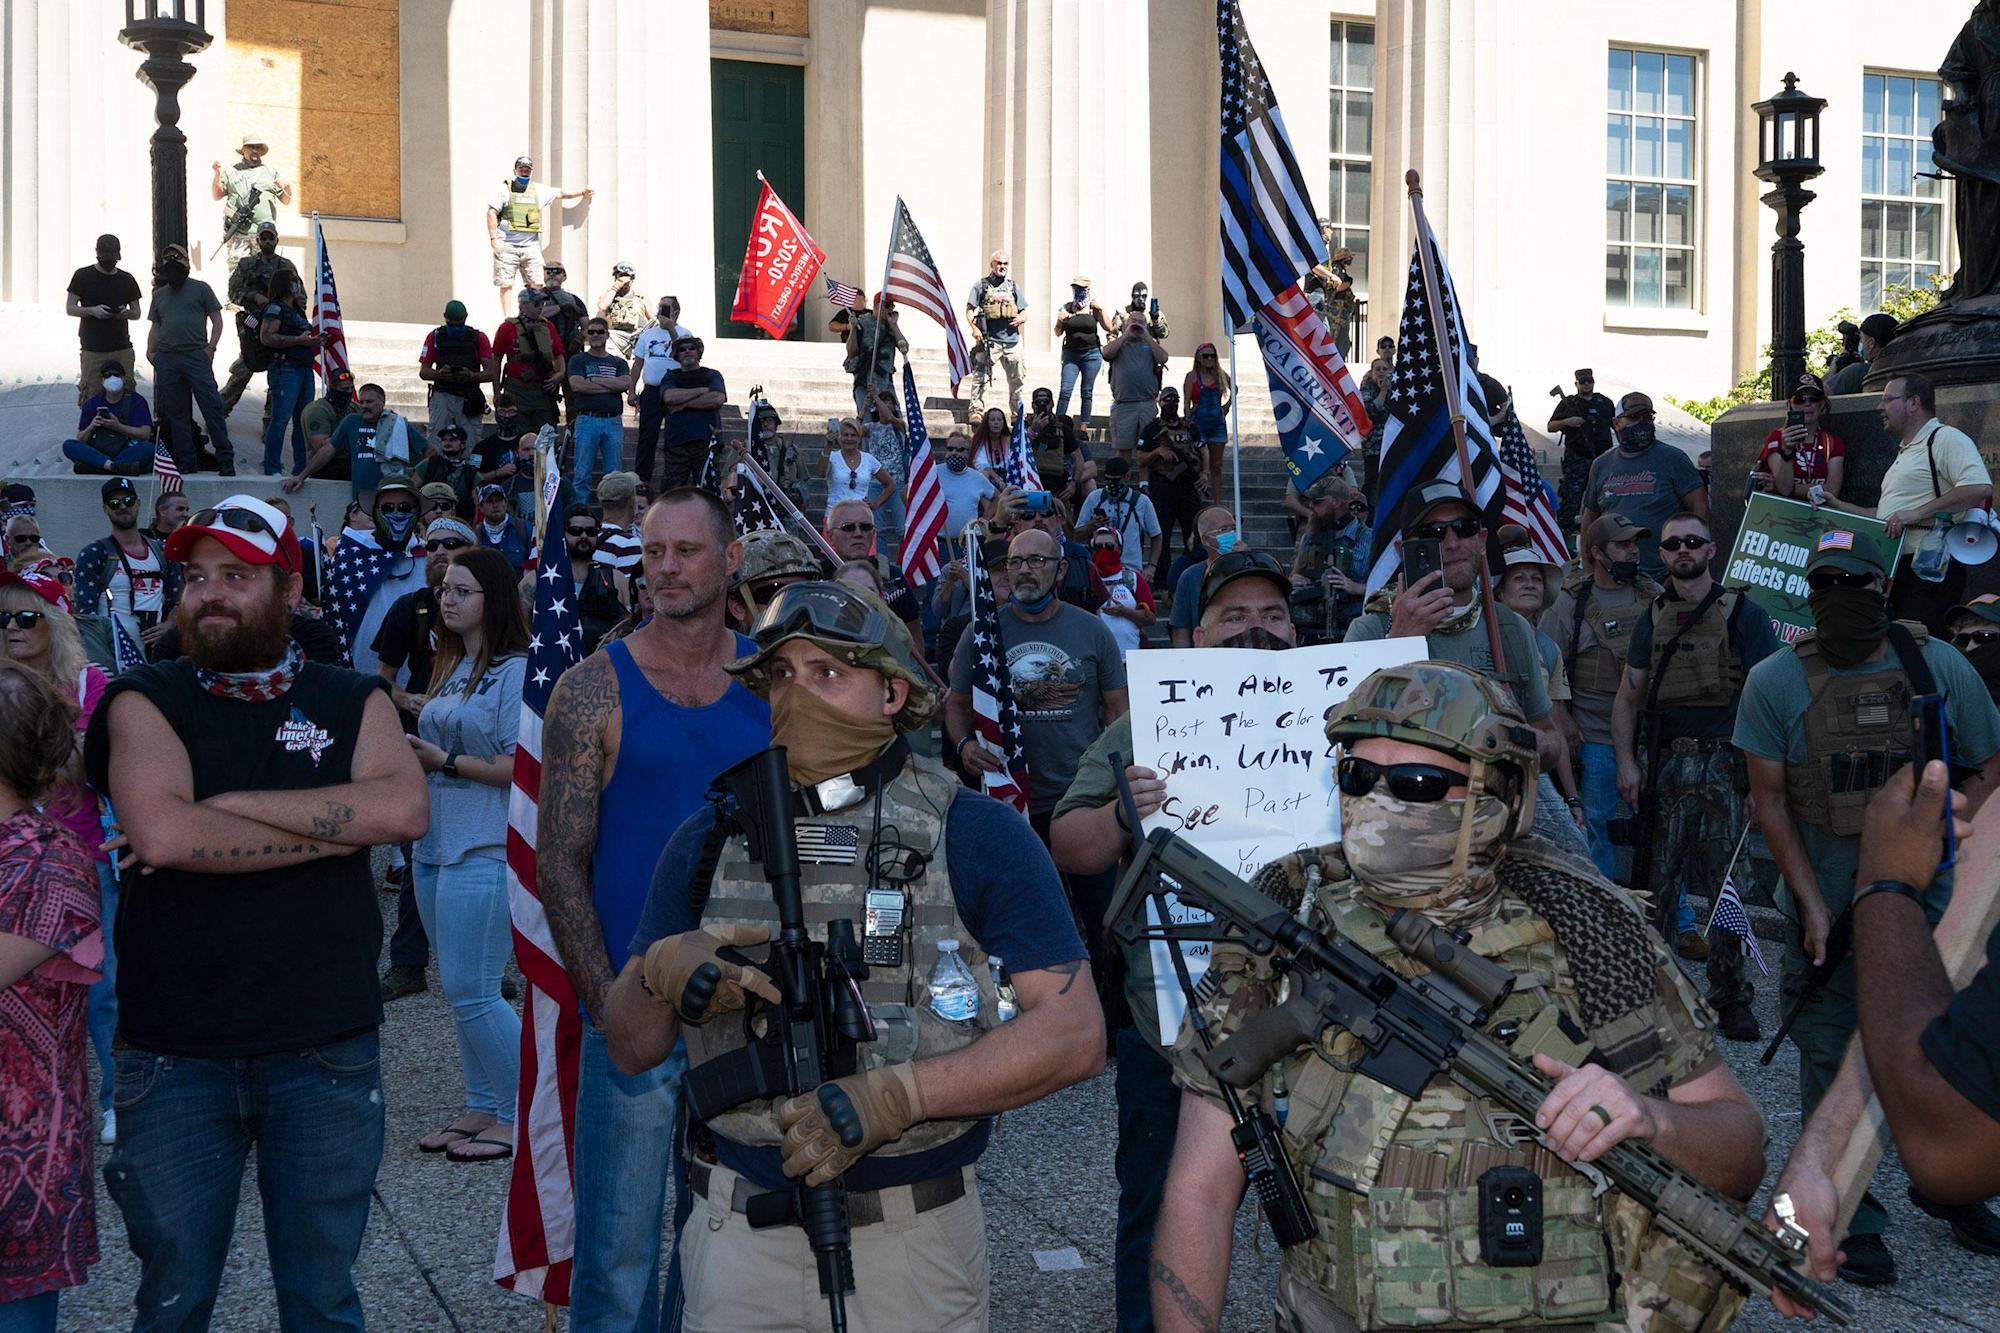 Armed Right-Wing Groups Aren't 'Militias'—We Need to Stop Calling Them That